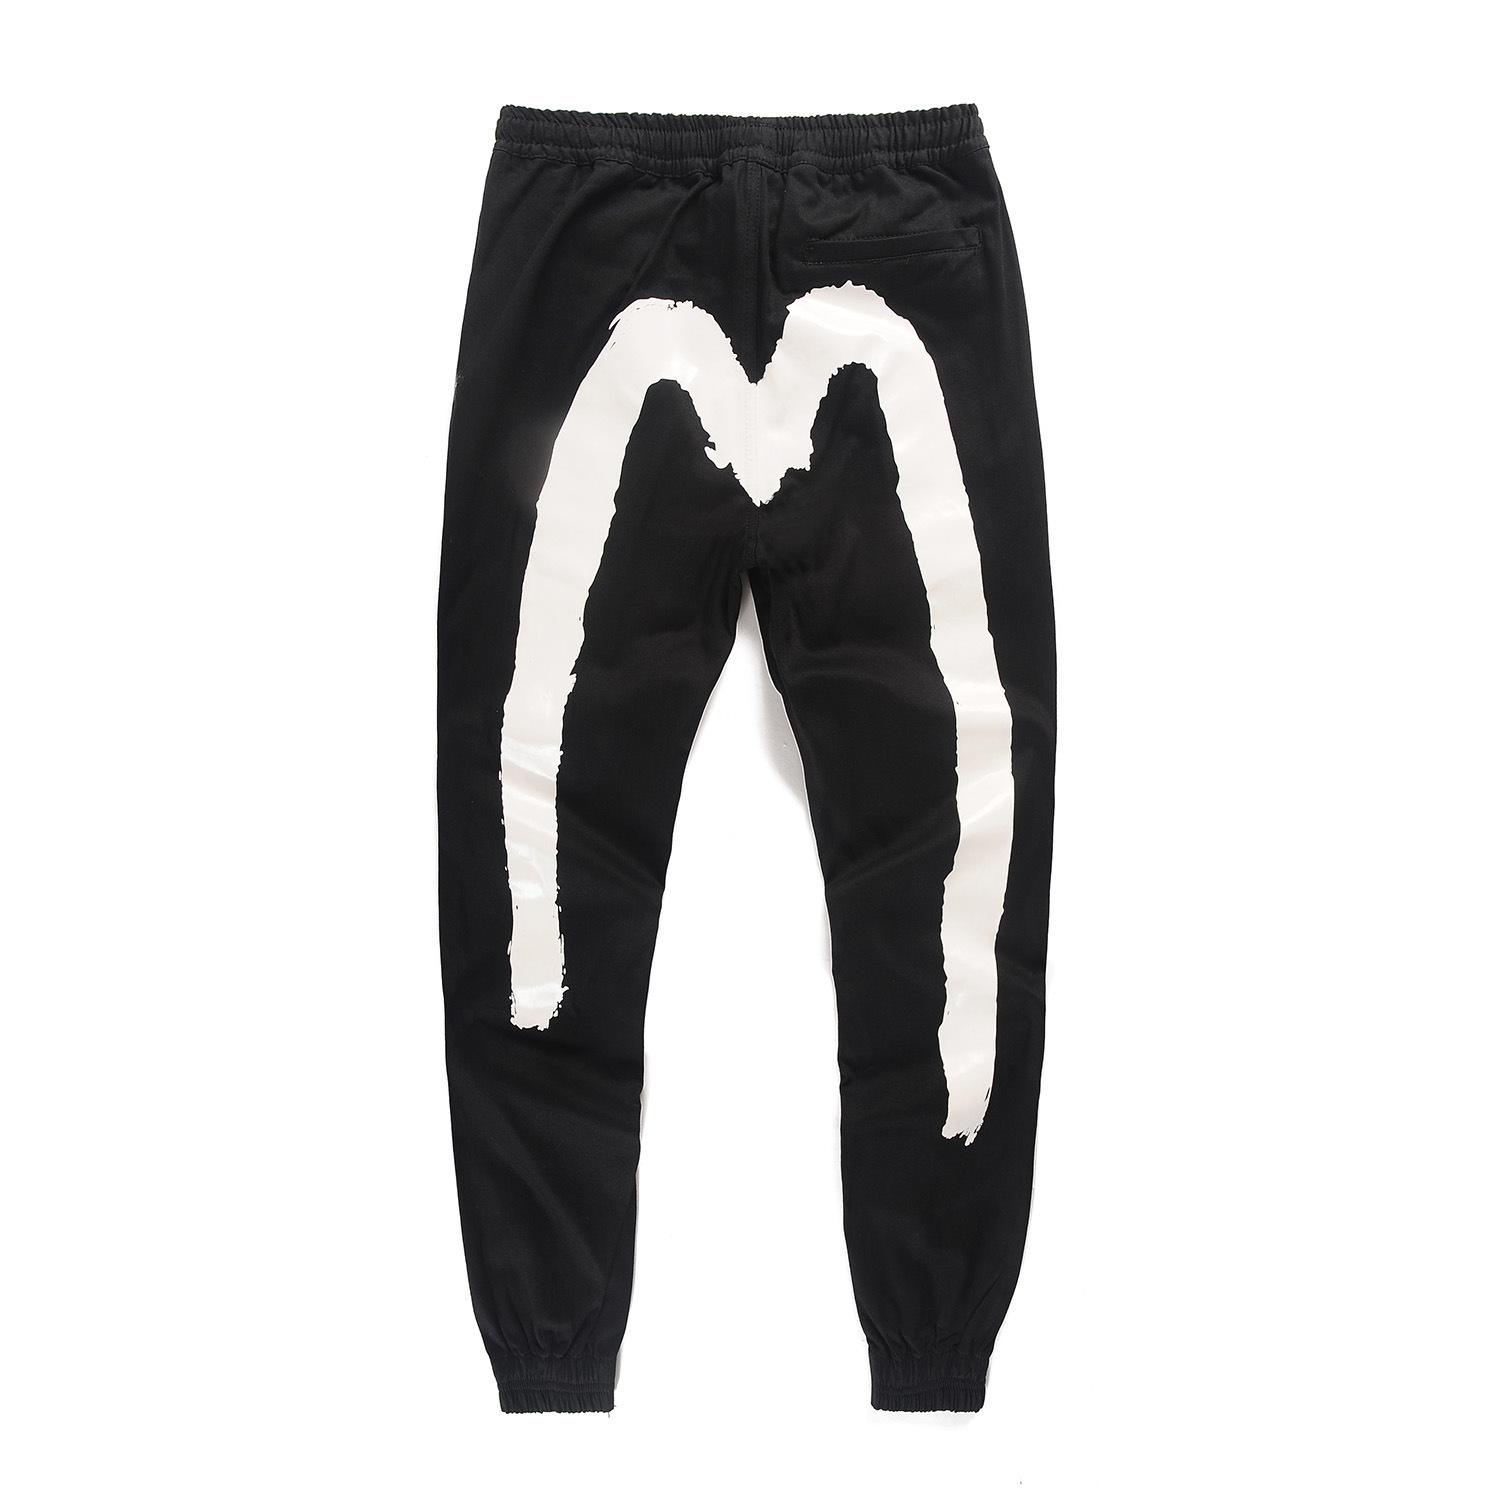 207c2bbdf7b526 2019 2019 Mens Joggers Casual Pants Fitness Sportswear Tracksuit Bottoms  Skinny Sweatpants Long Trousers Black Track Pants Slim Size S 2XL From  M1193503412, ...